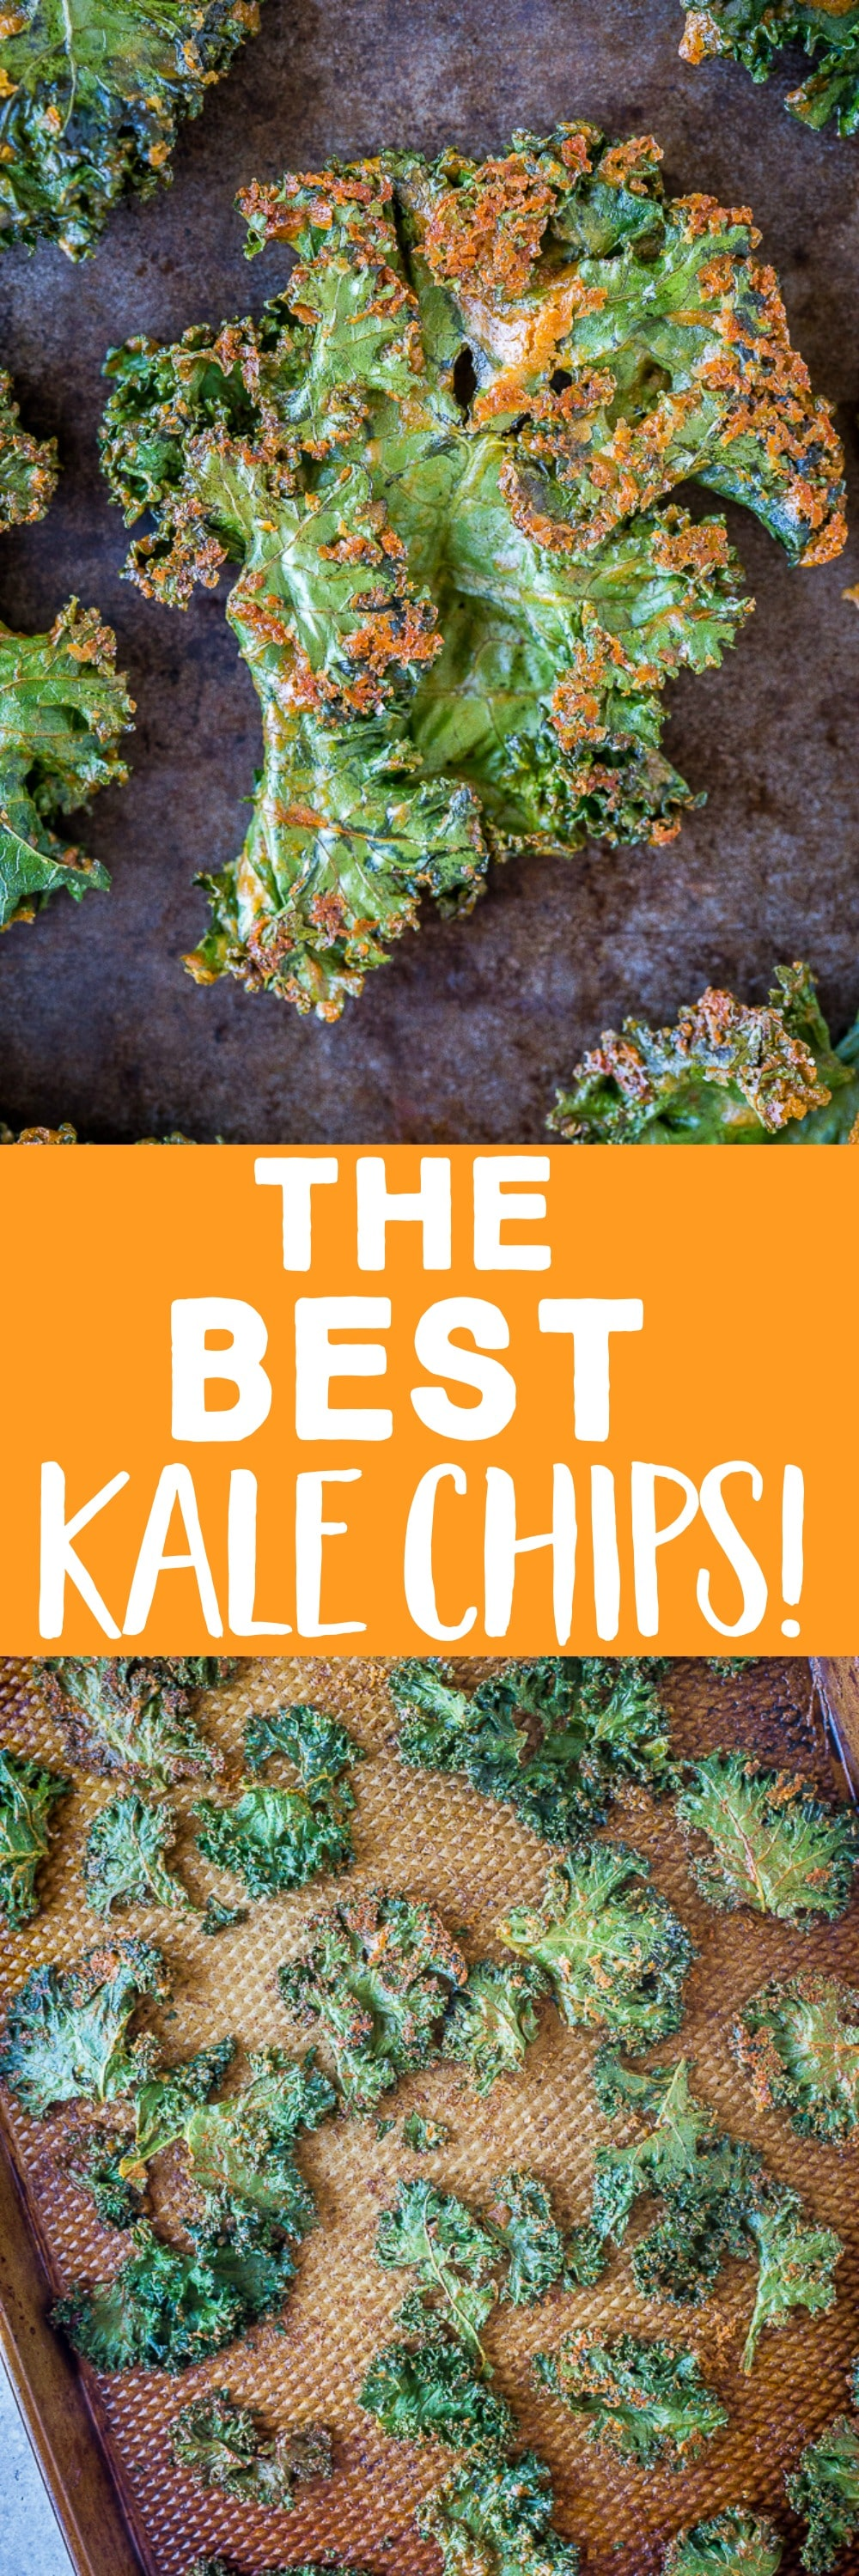 really are the BEST Kale Chips! They're crispy, flavorful and I'm certain they will turn any kale hater into a kale chip lover! They're baked in the oven and perfect for a healthy snack that even kids enjoy!